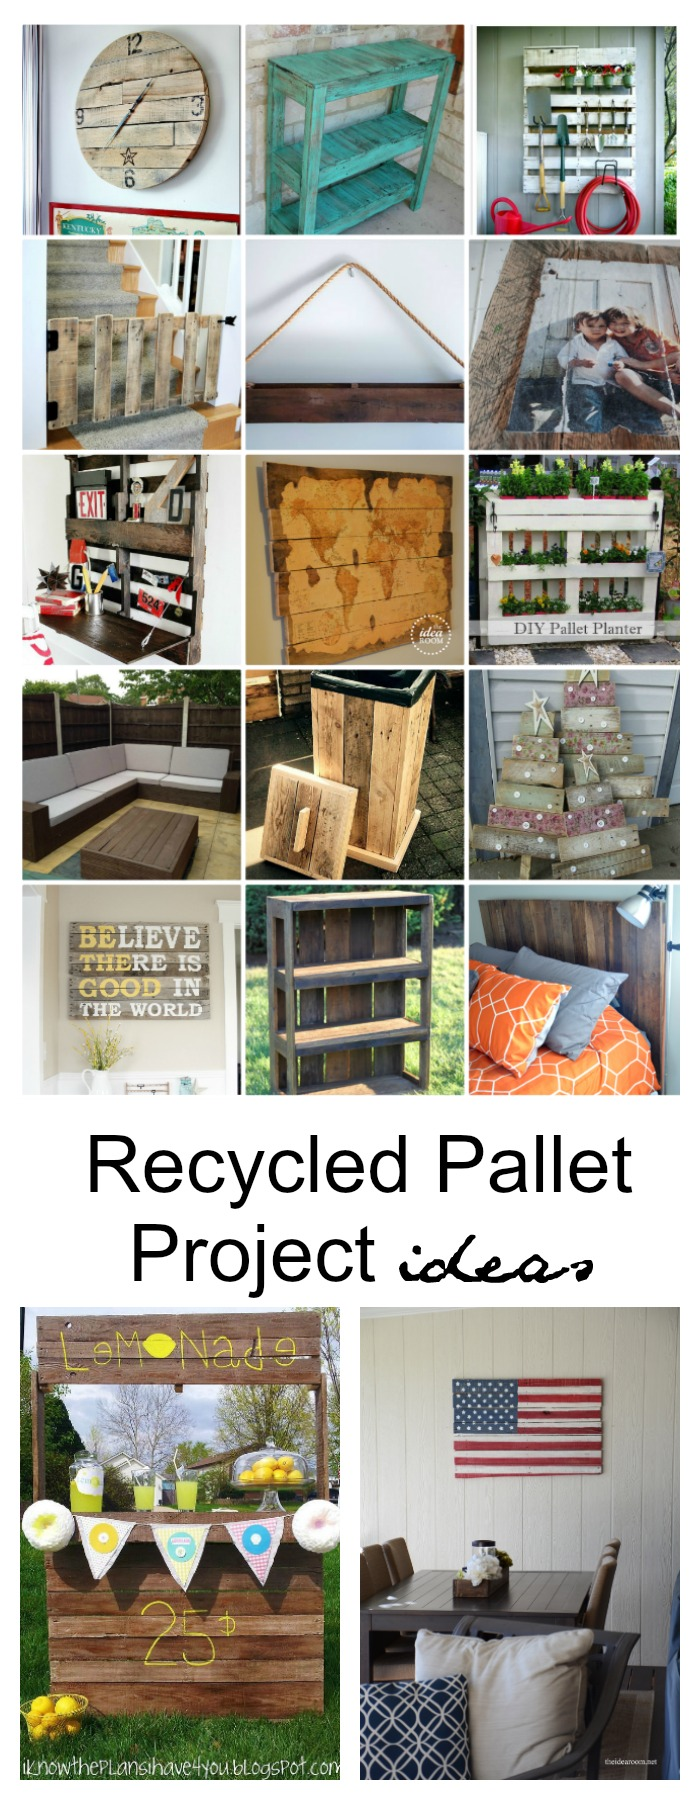 Recycled-Pallet-Project-Ideas-Pin